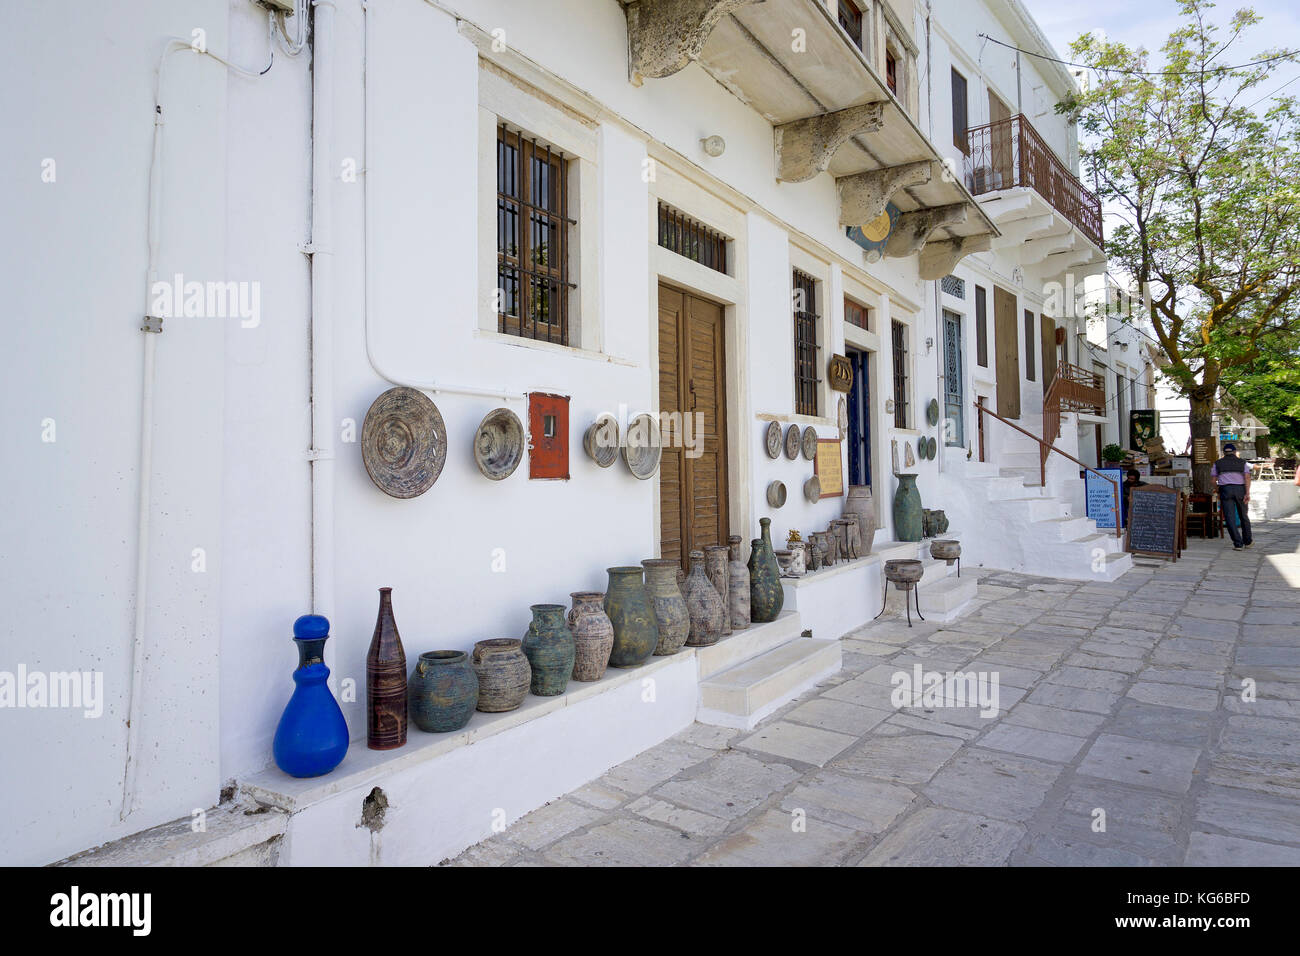 Art and handcraft shop at the mountain village Apiranthos, Naxos island, Cyclades, Aegean, Greece - Stock Image